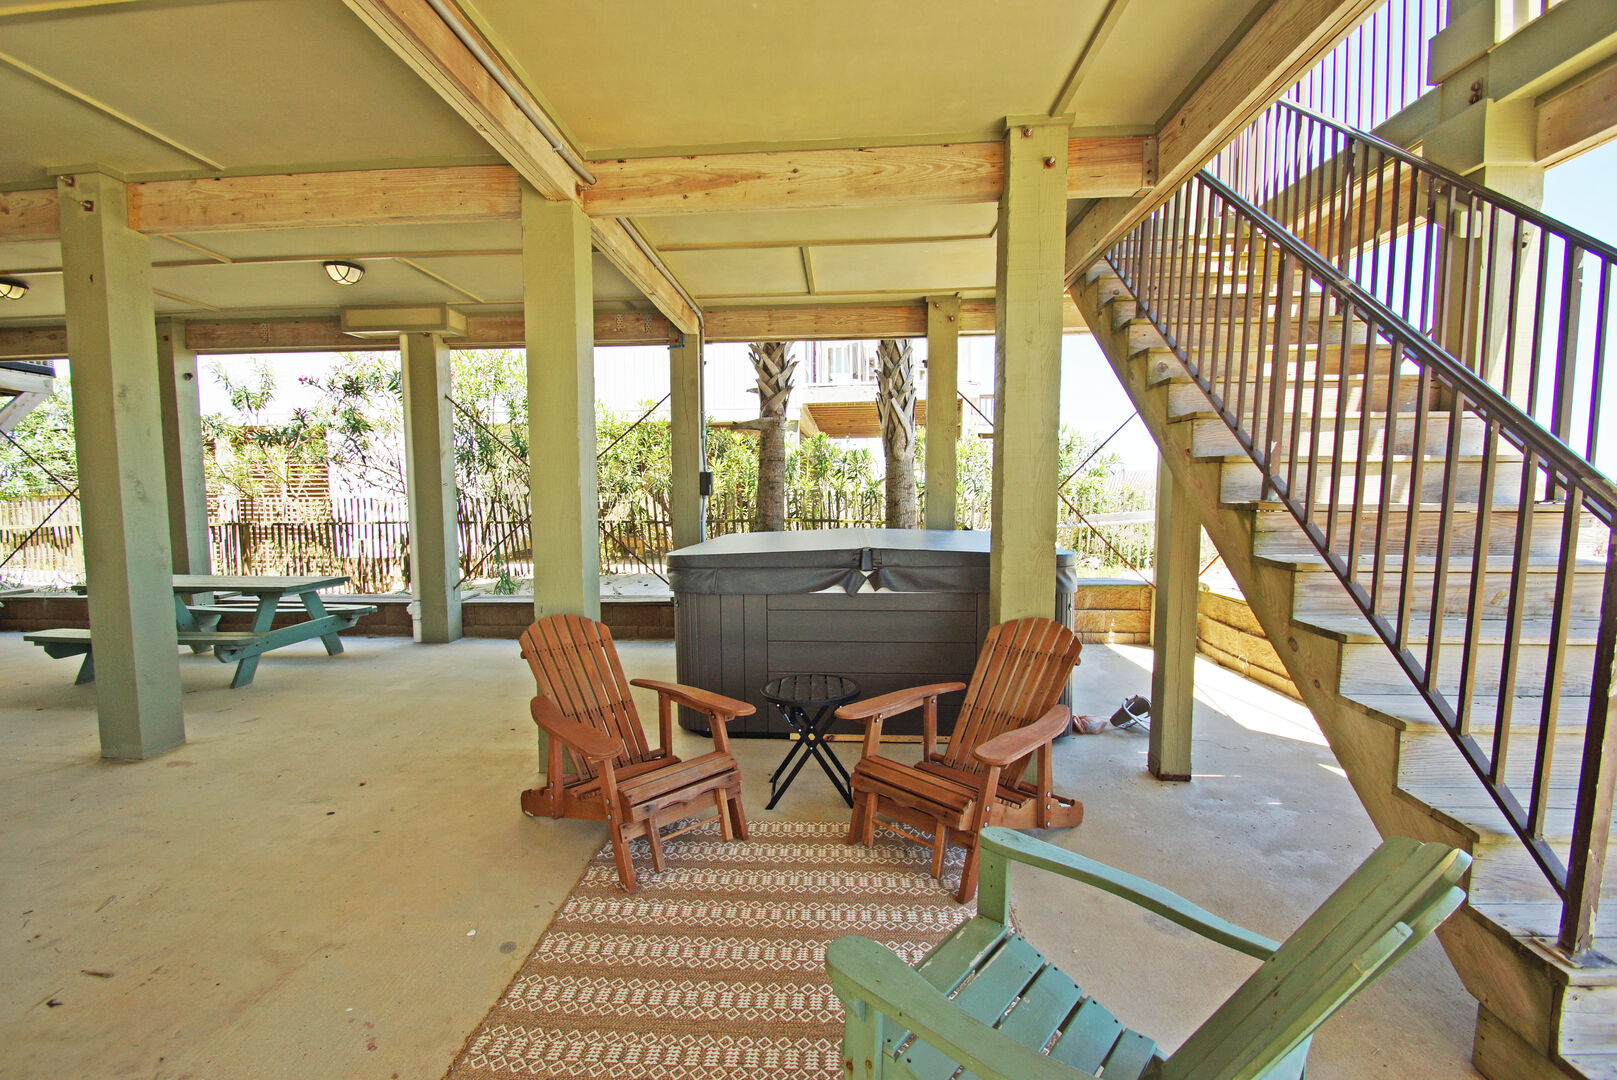 Hot Tub and Outdoor Chairs in the Shaded Area Under the House.